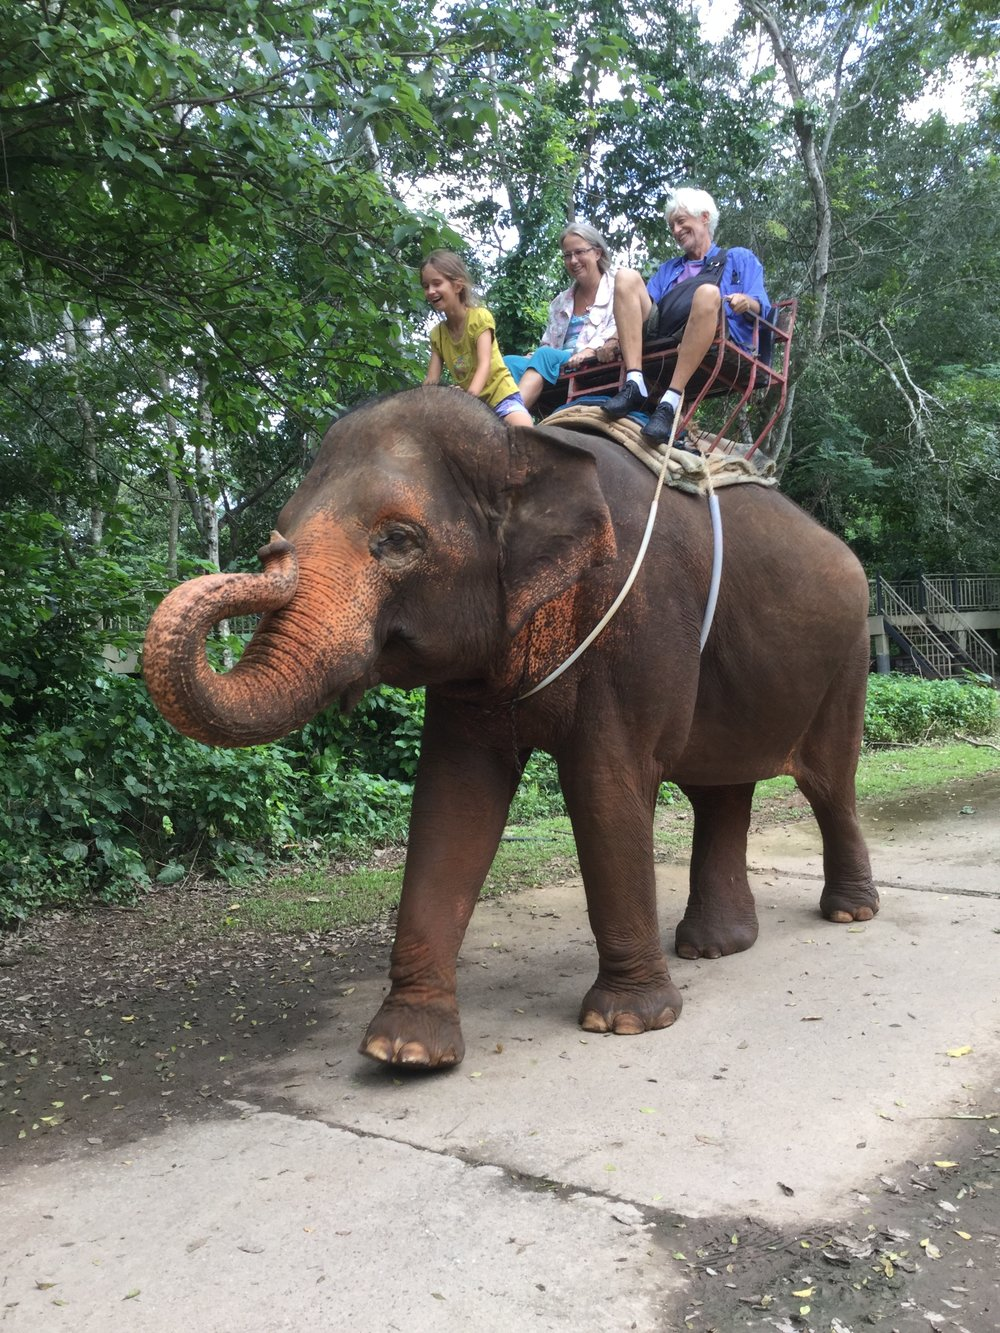 Lili is so fearless. She went to sit on the elephant's neck and rode there for a long time - just like that!